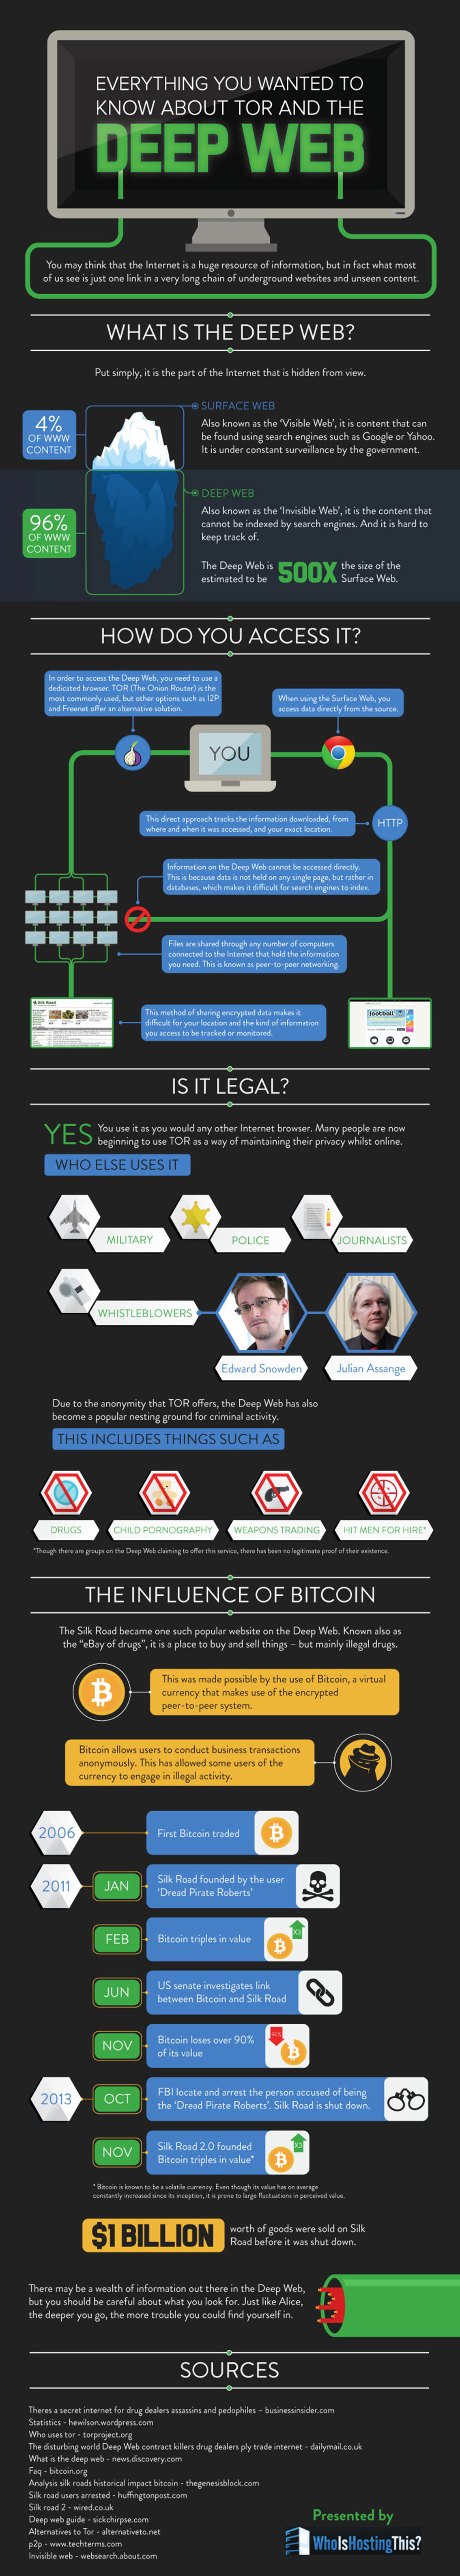 How to access the deep web safely infographic how to access the deep web safely infographic ccuart Gallery